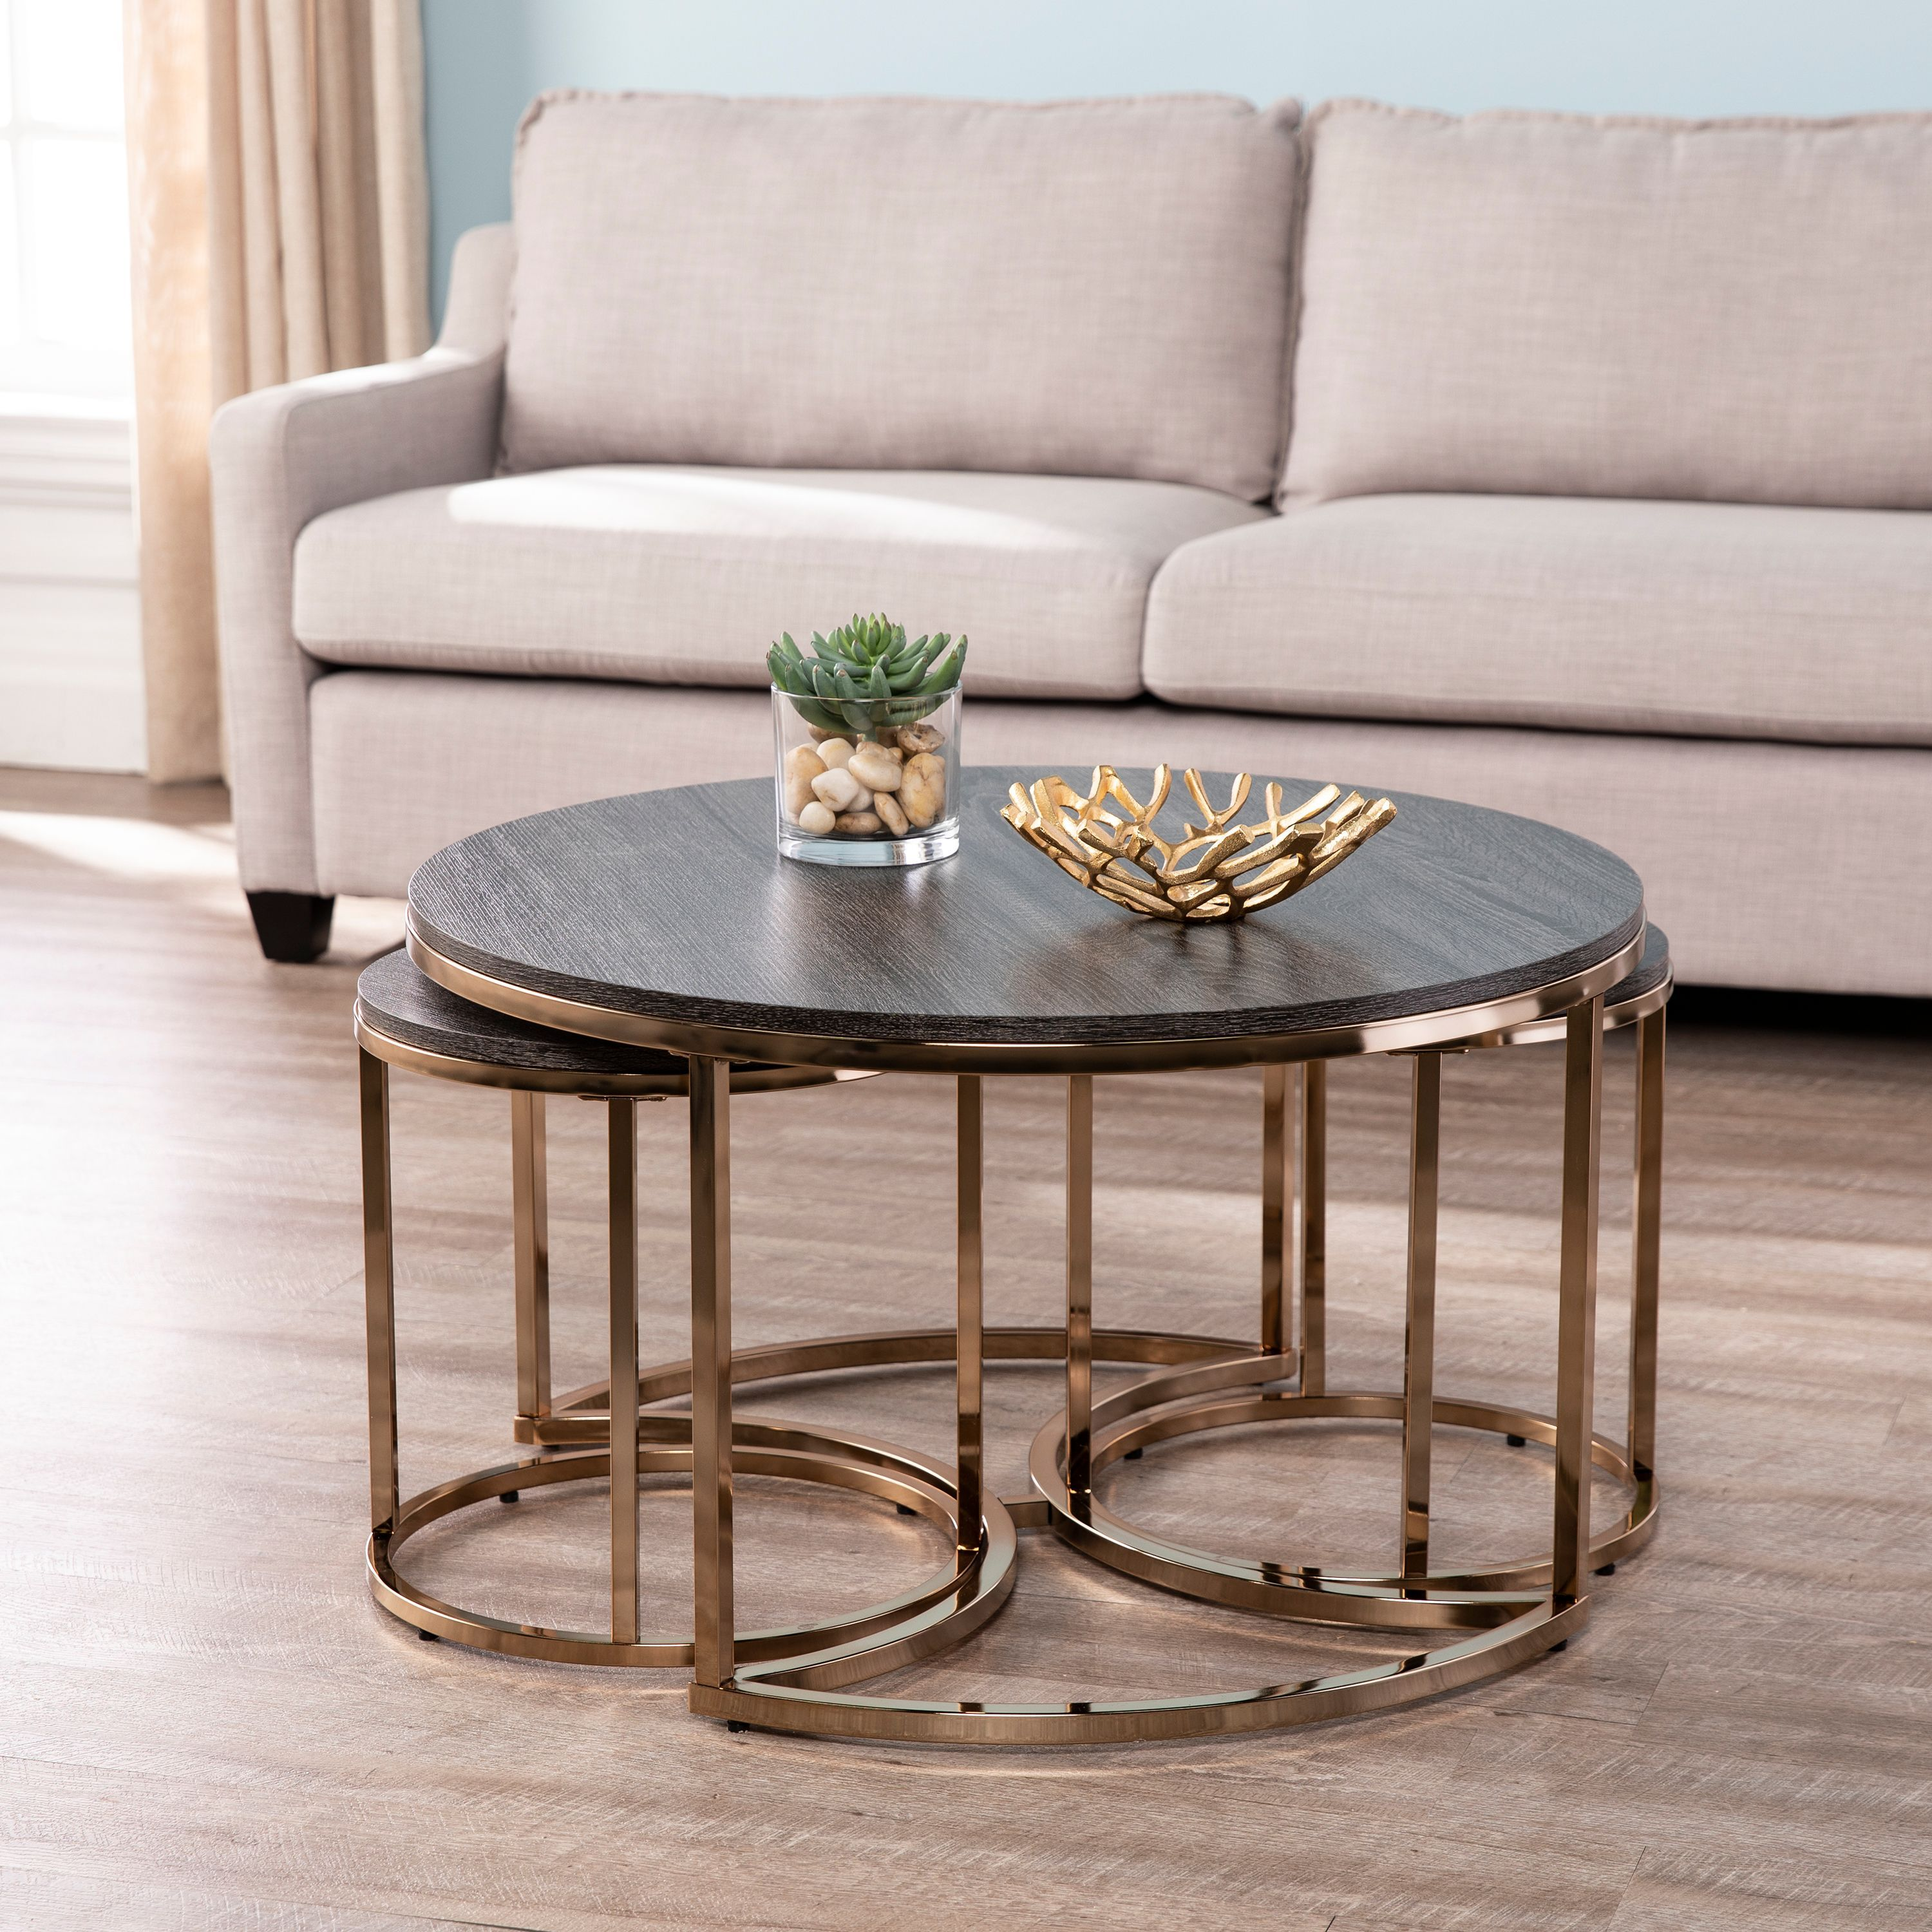 Lokyle Round Nesting Coffee Tables 3pc Set Glam Champagne By Ember Interiors Walmart Com In 2021 Nesting Coffee Tables Round Nesting Coffee Tables Living Room Table Sets [ 3000 x 3000 Pixel ]